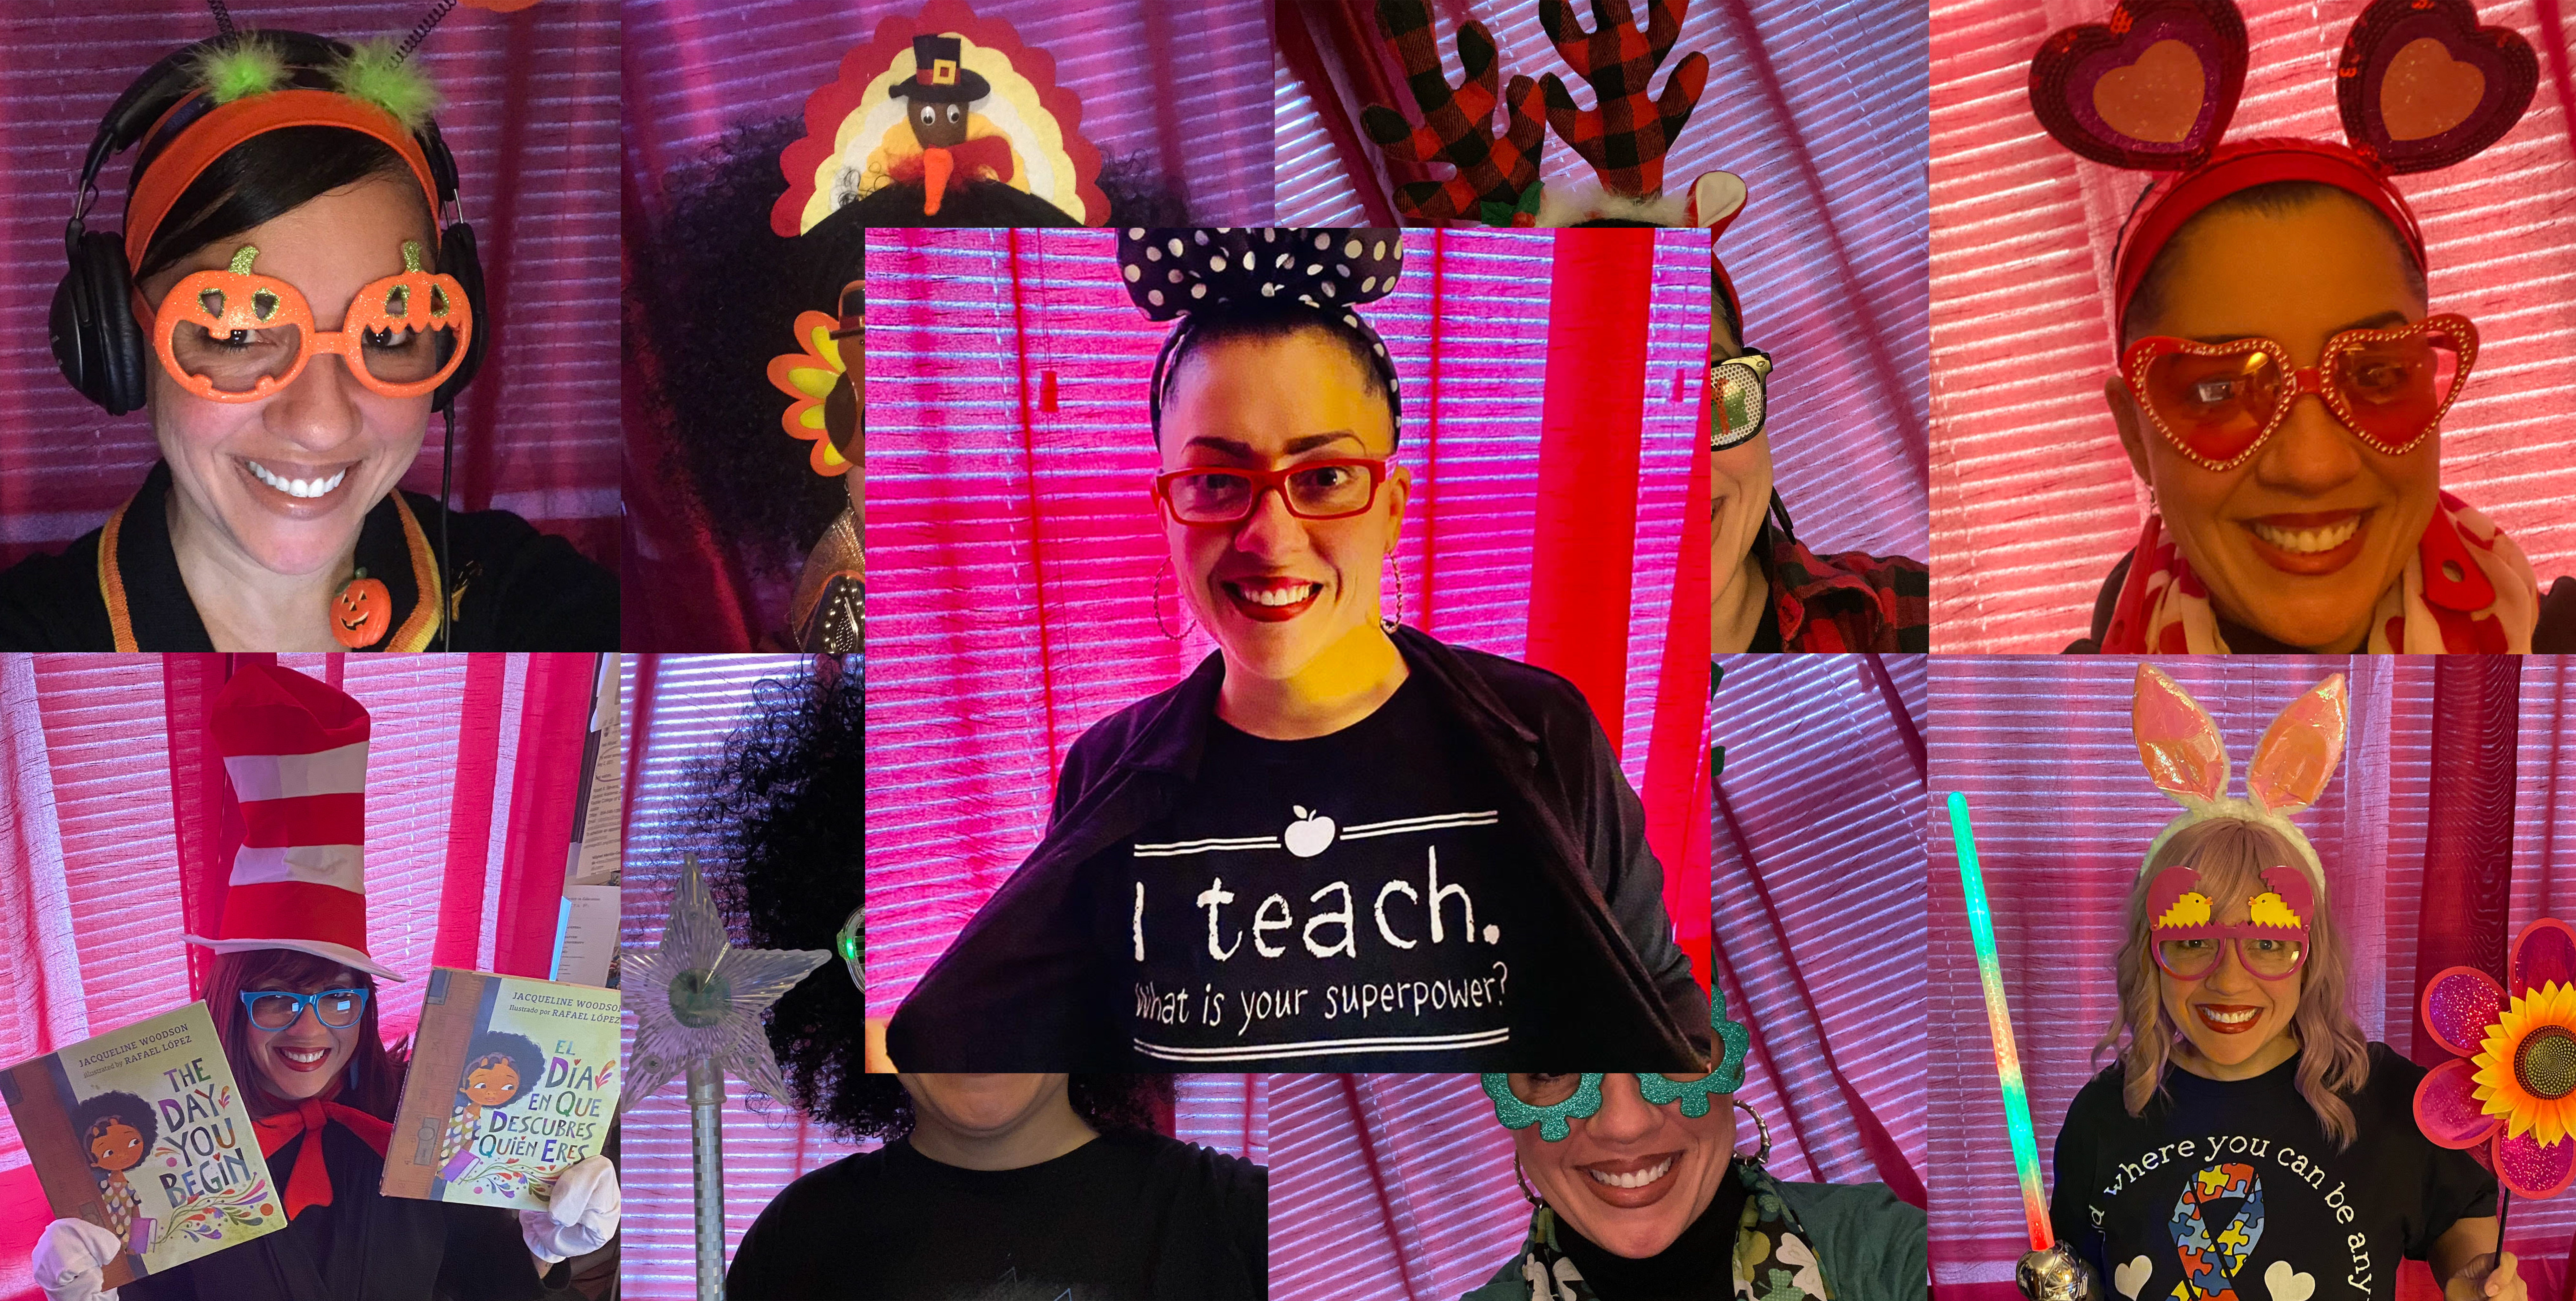 A multi-photo collage of Newark teacher Milybet Montijo-Cepeda, who uses a variety of outfits to engage her students.